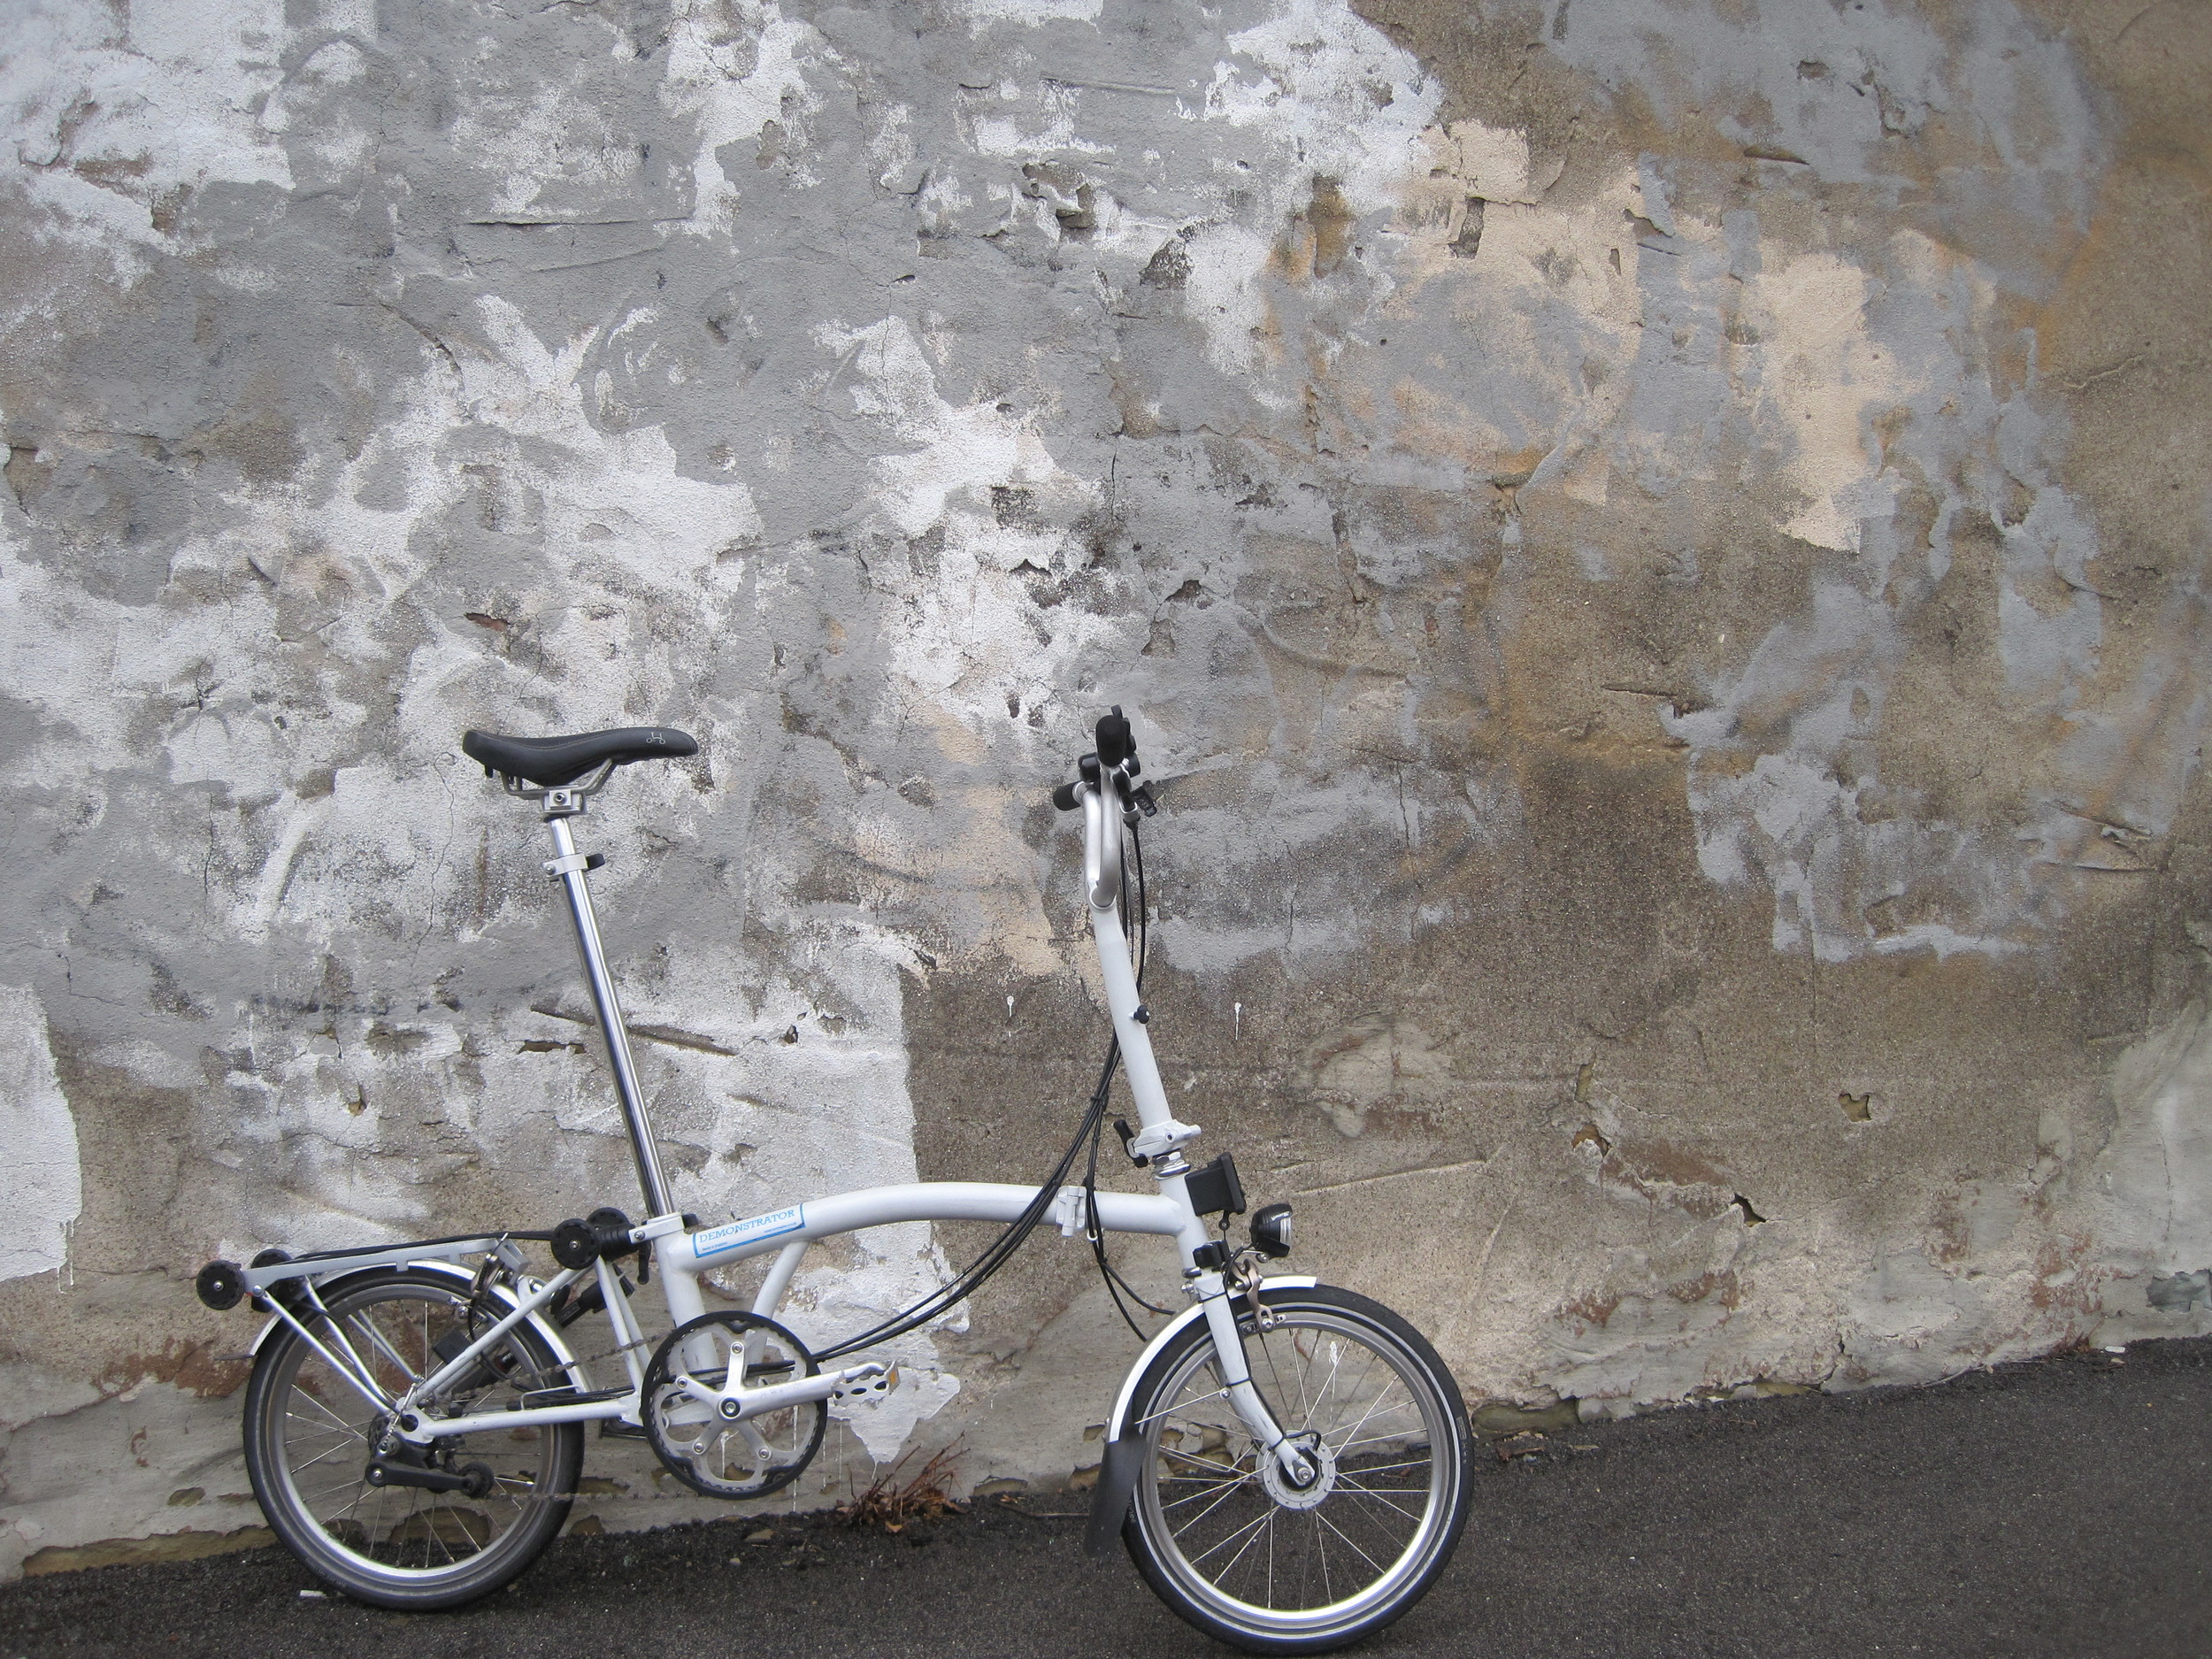 Here is a picture of our demo brompton in it's natural environment. An urban area.